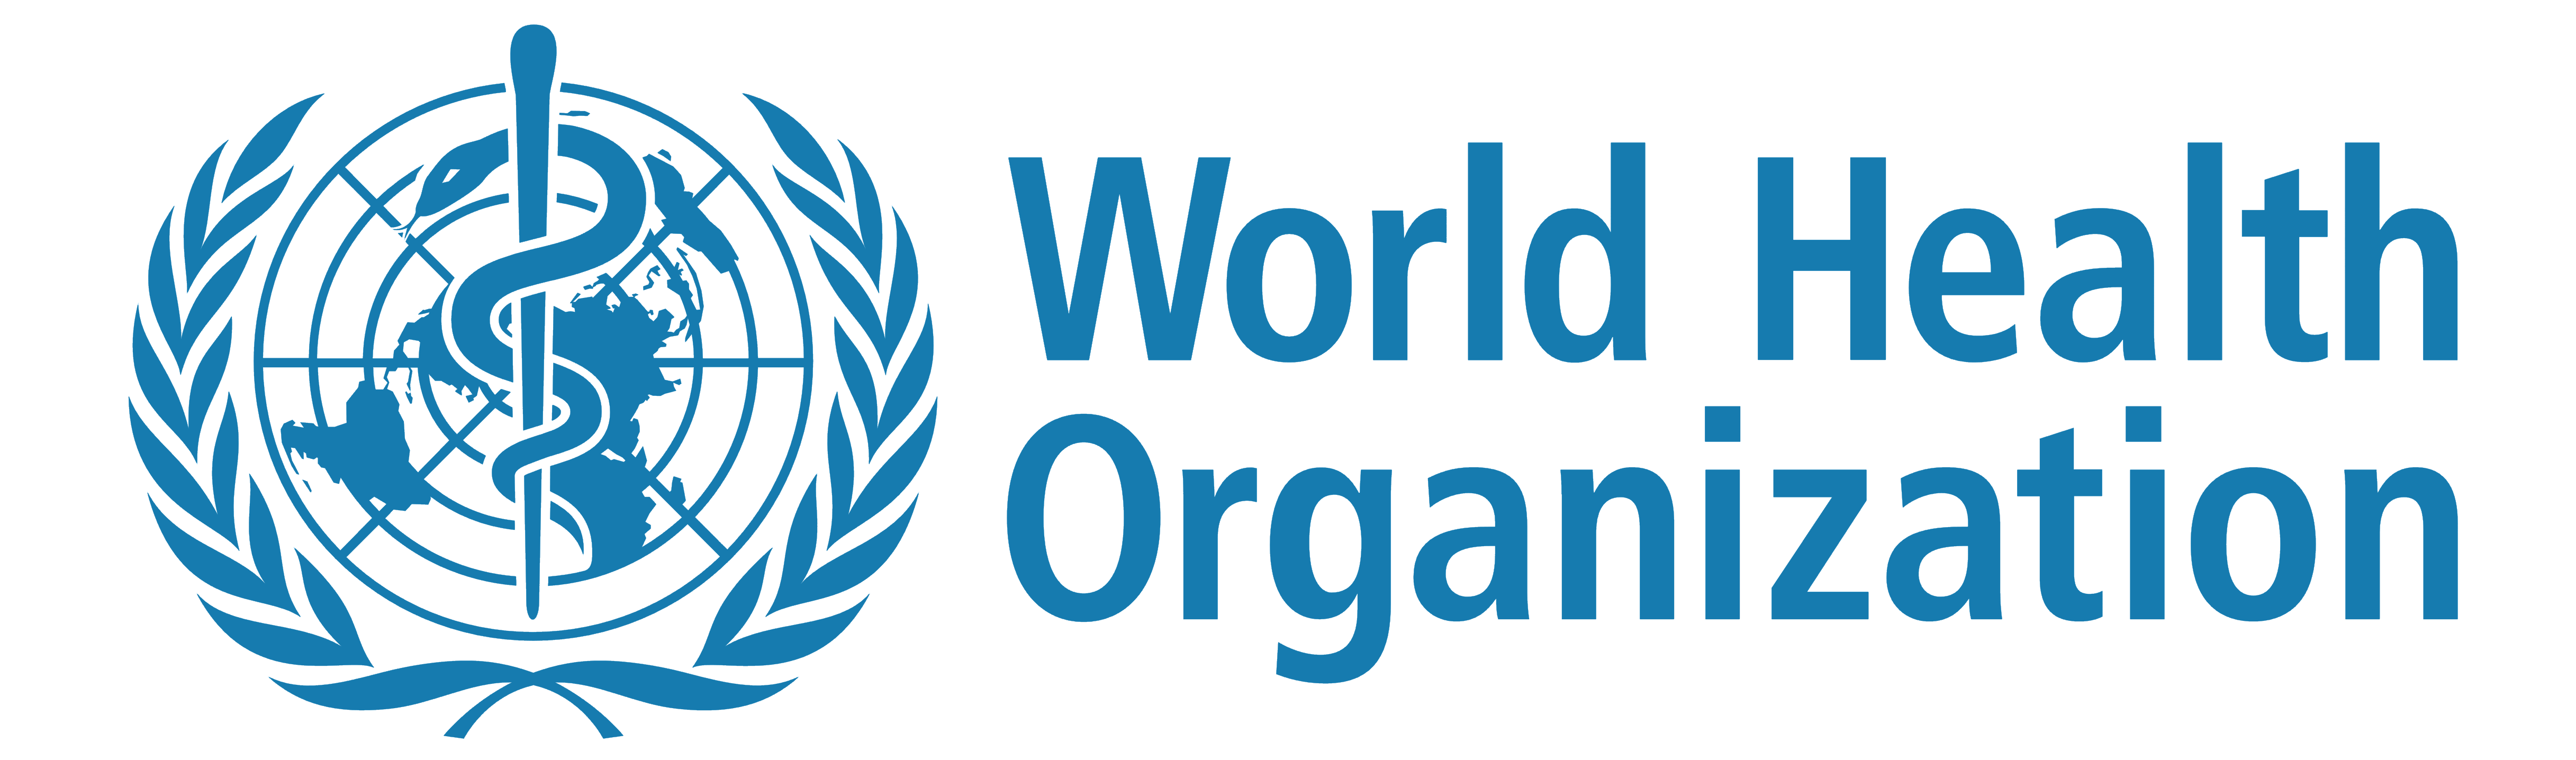 World_Health_Organization_logo_logotype.